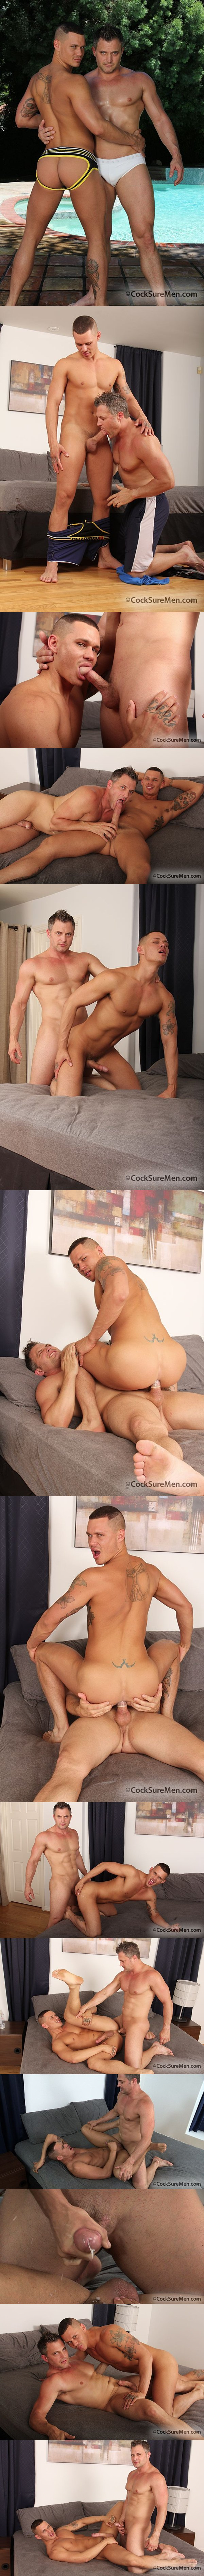 muscular Brenden Cage Fucks the load out of  sexy Tate Ryder at Cocksuremen 01